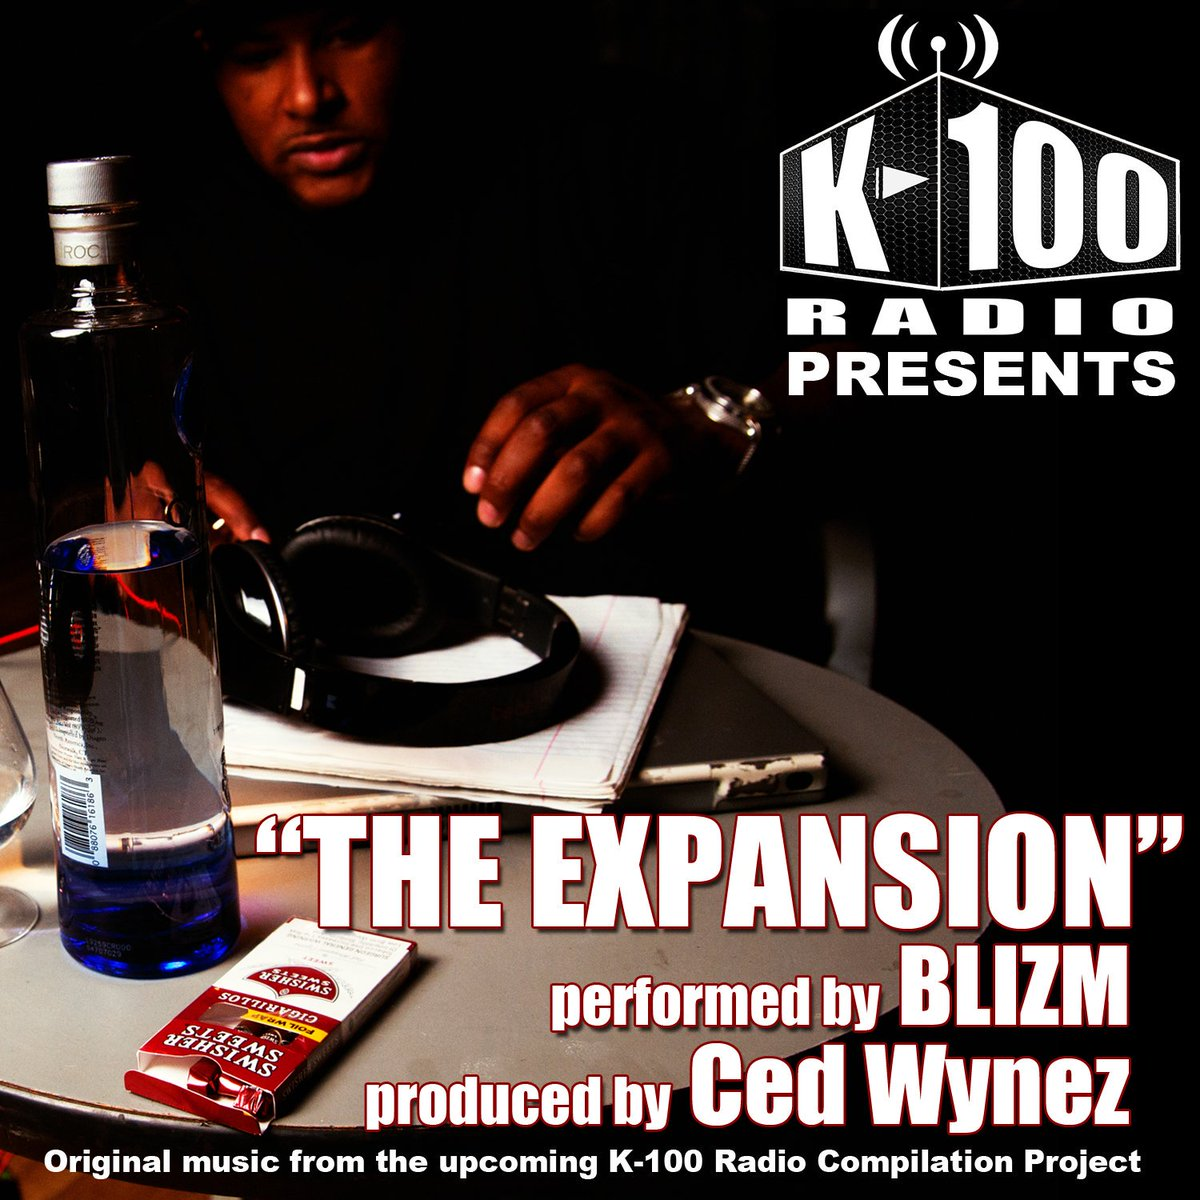 """The Expansion"" performed by @Blizm produced by @iamCedWynez on our #Soundcloud page https://t.co/f3r8x2Hhoq https://t.co/IkYRQYsf2U"